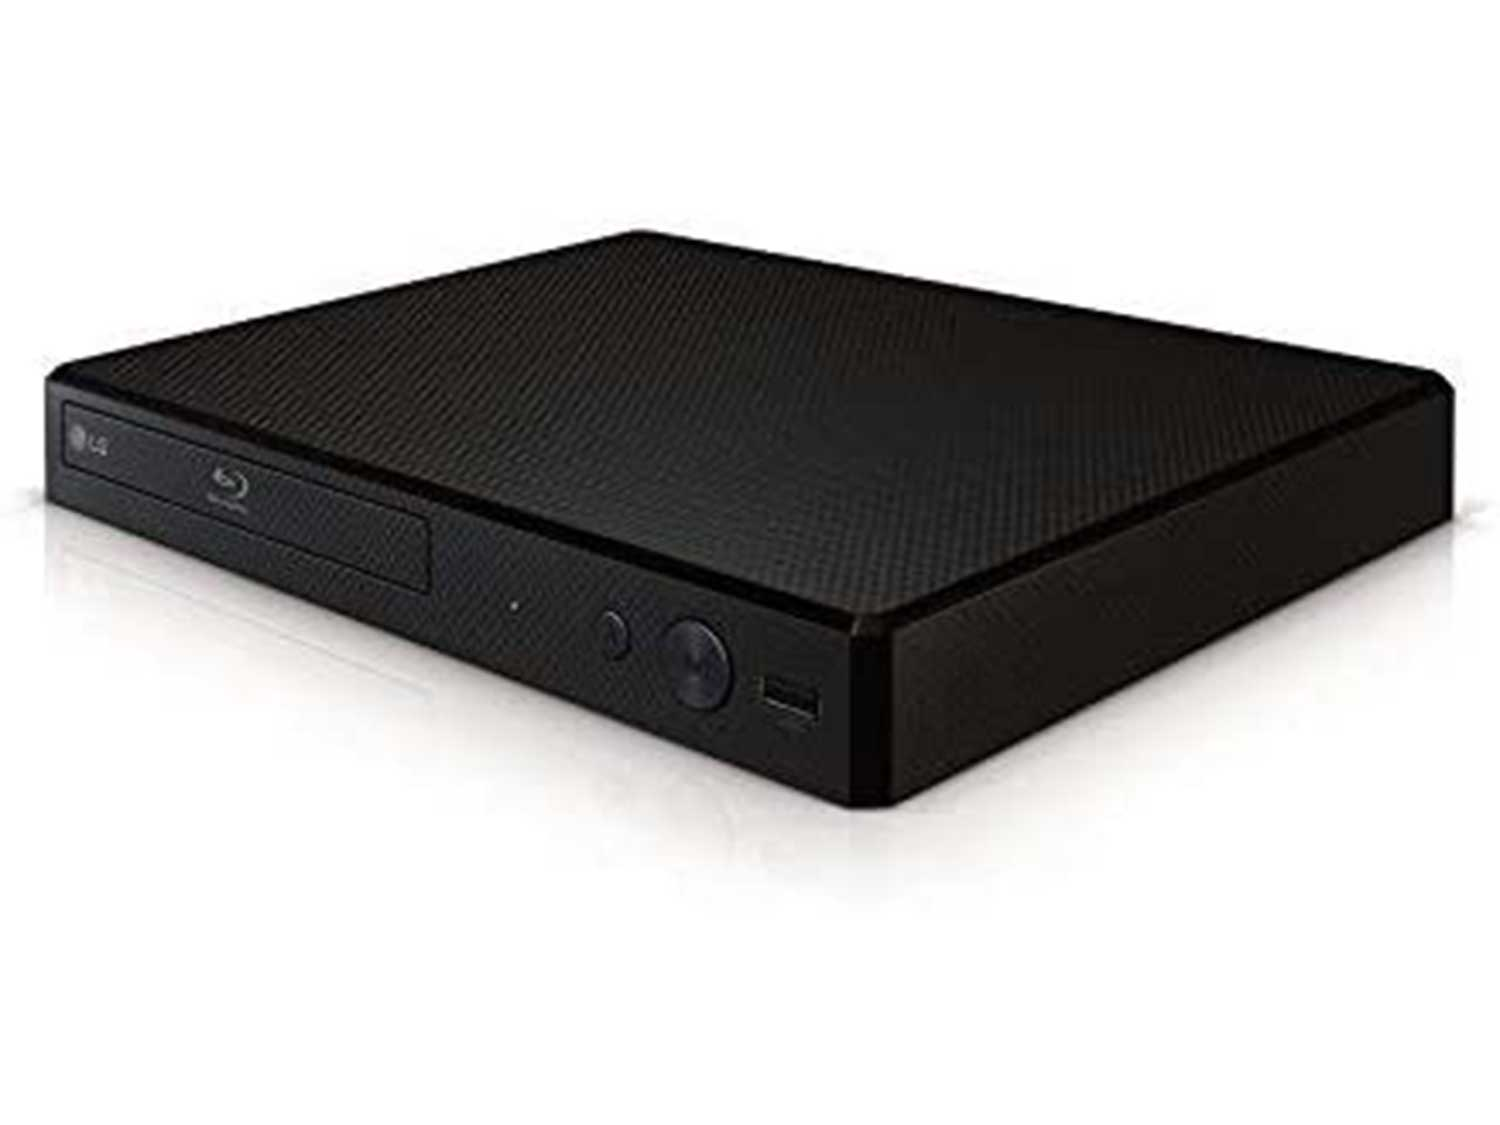 LG BP175 Blu-Ray DVD Player, with HDMI Port Bundle (Comes with a 6 Foot HDMI Cable)